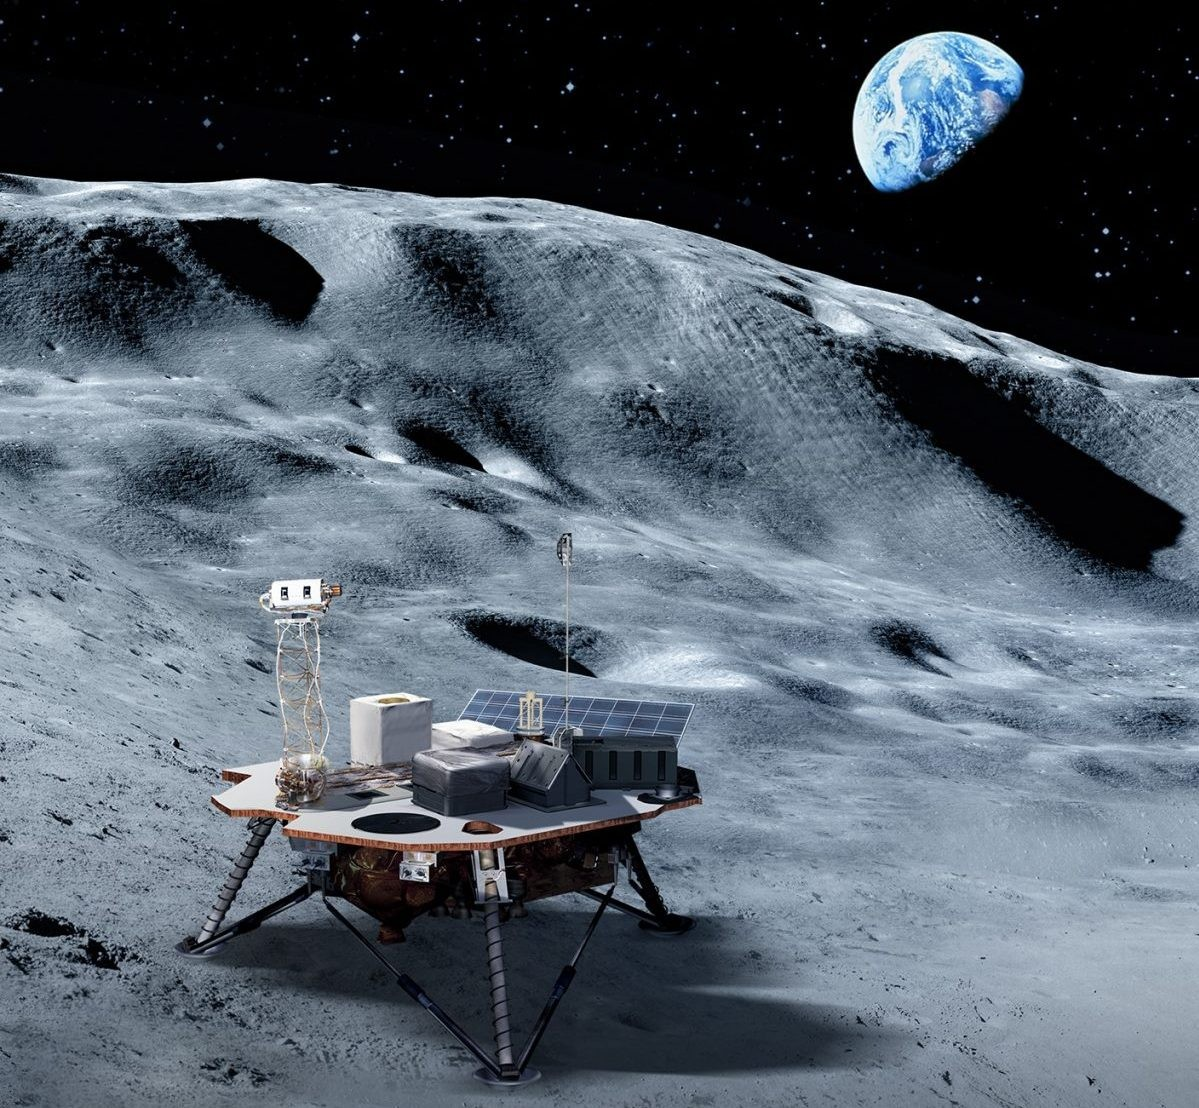 Lunar landers could carry science and technology payloads to the Moon to help NASA astronauts land on its surface once more. Credits: NASA